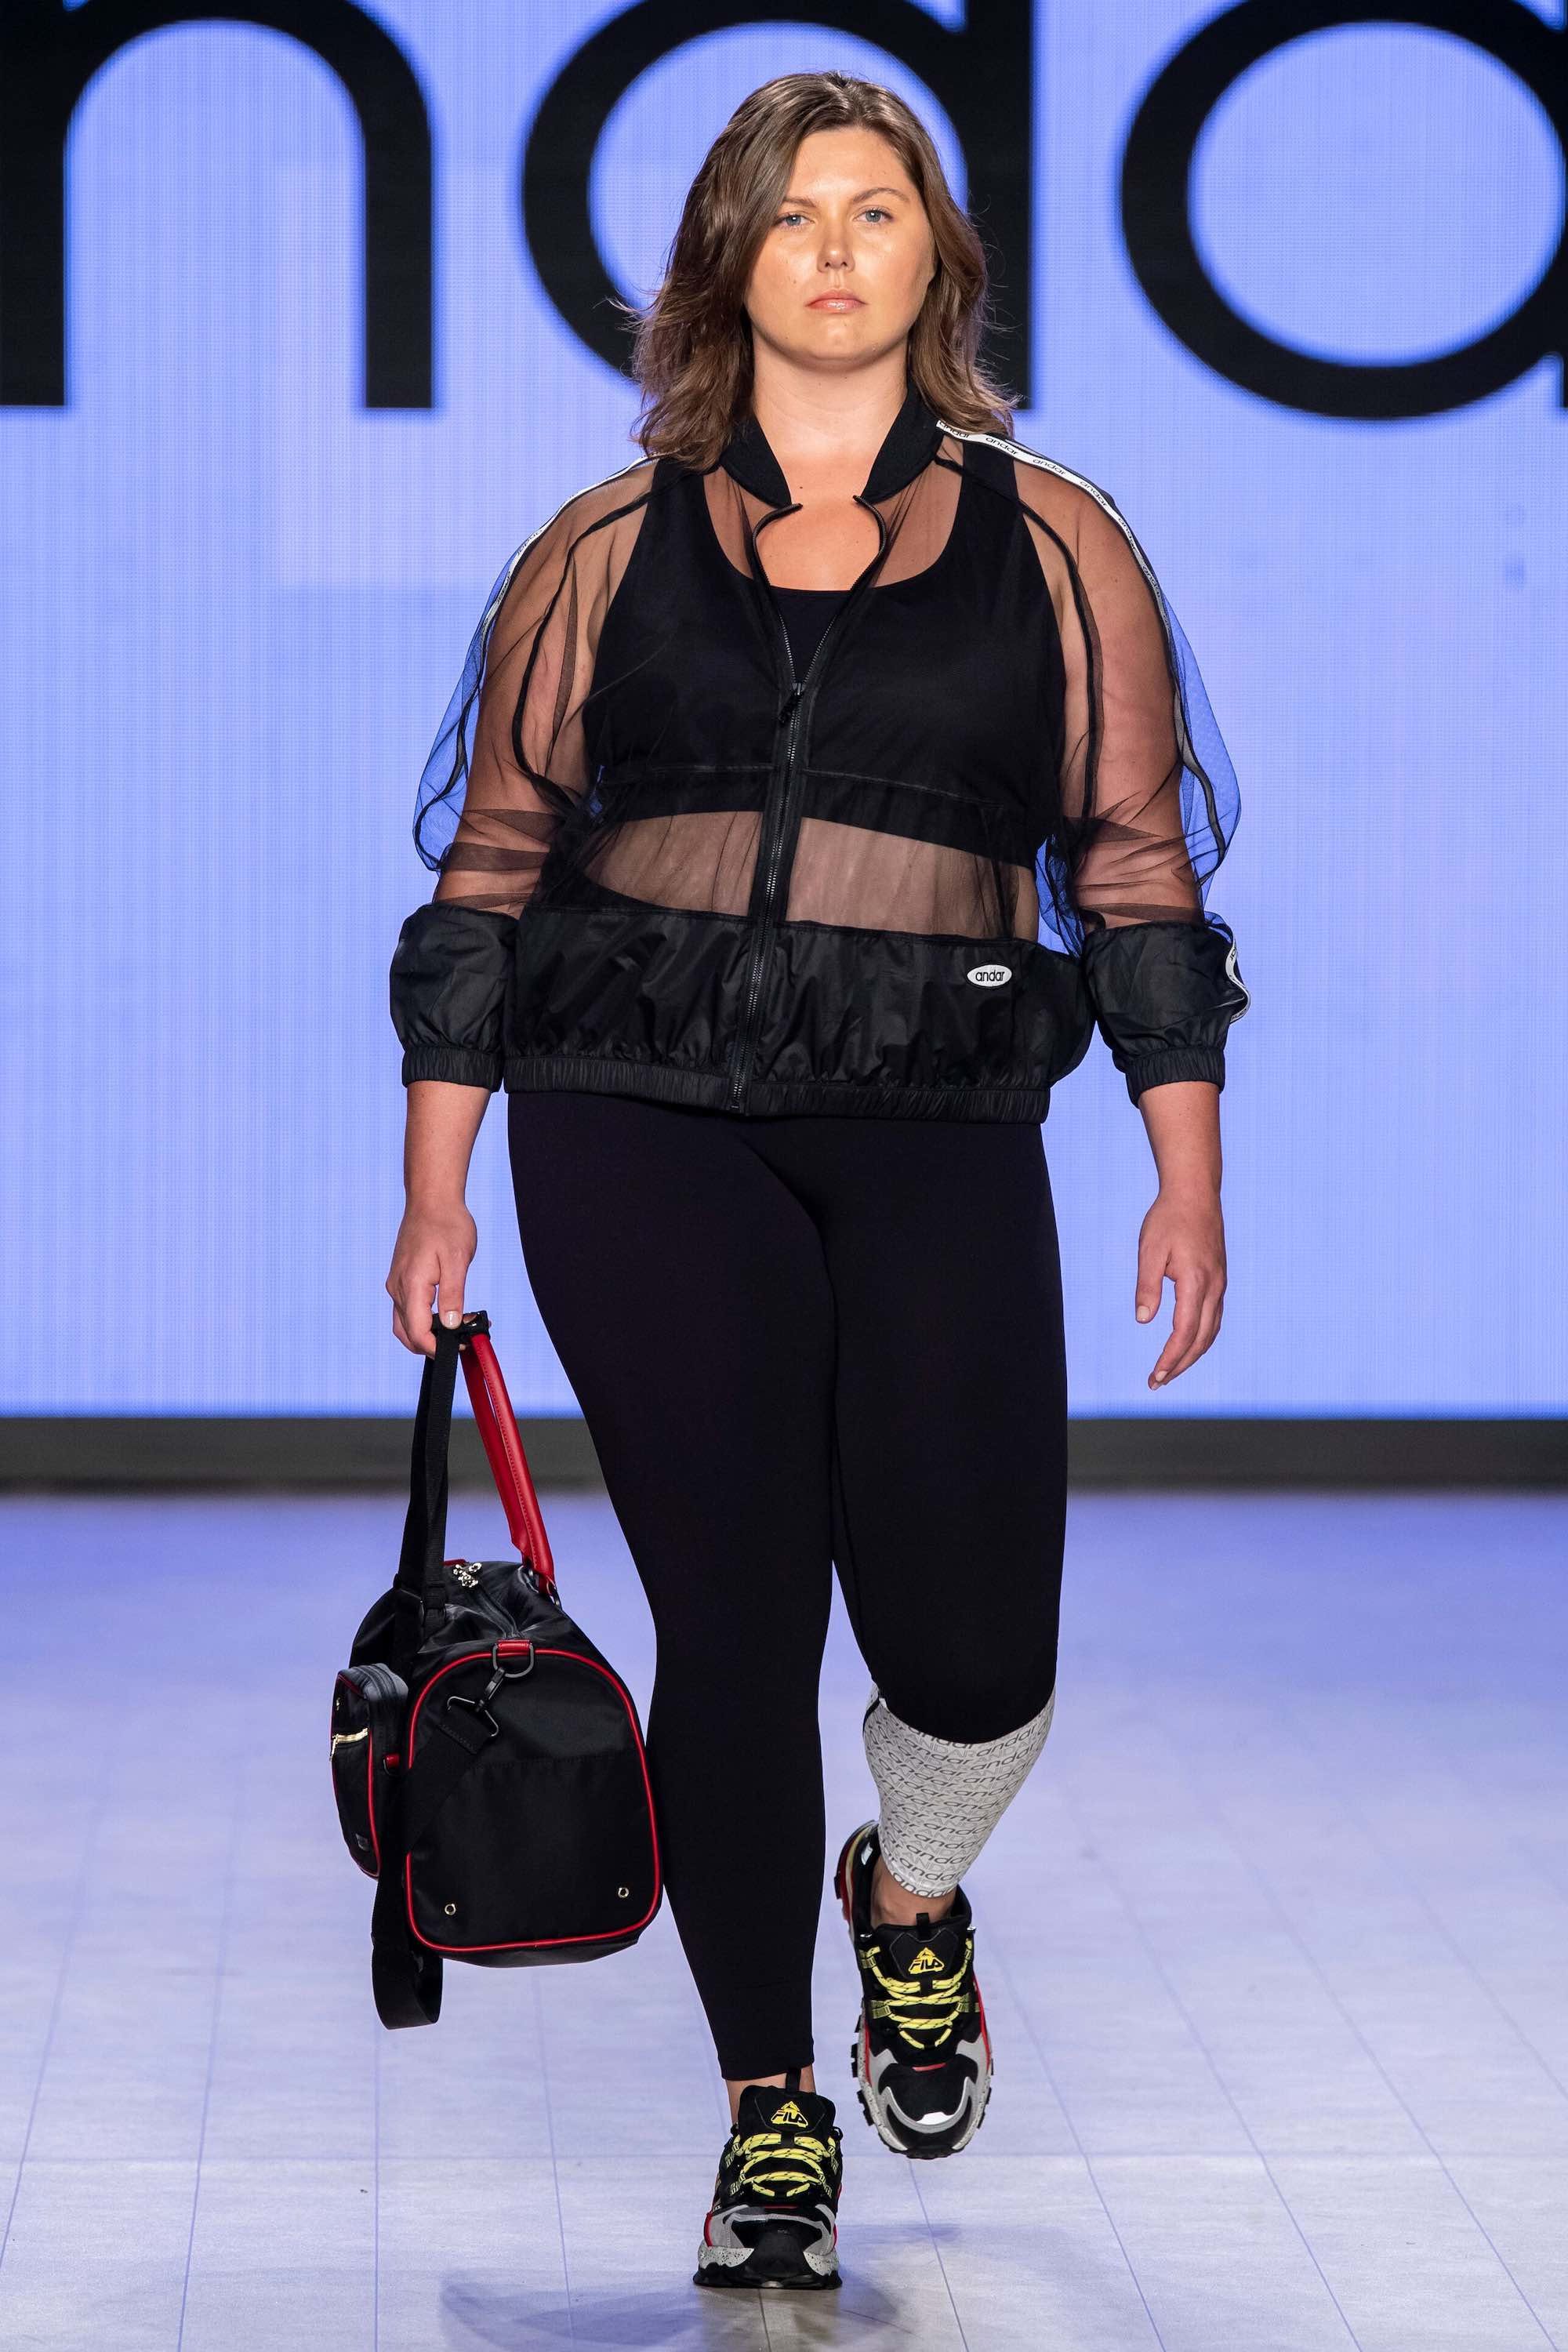 andor leisurewear vancouver fashion week